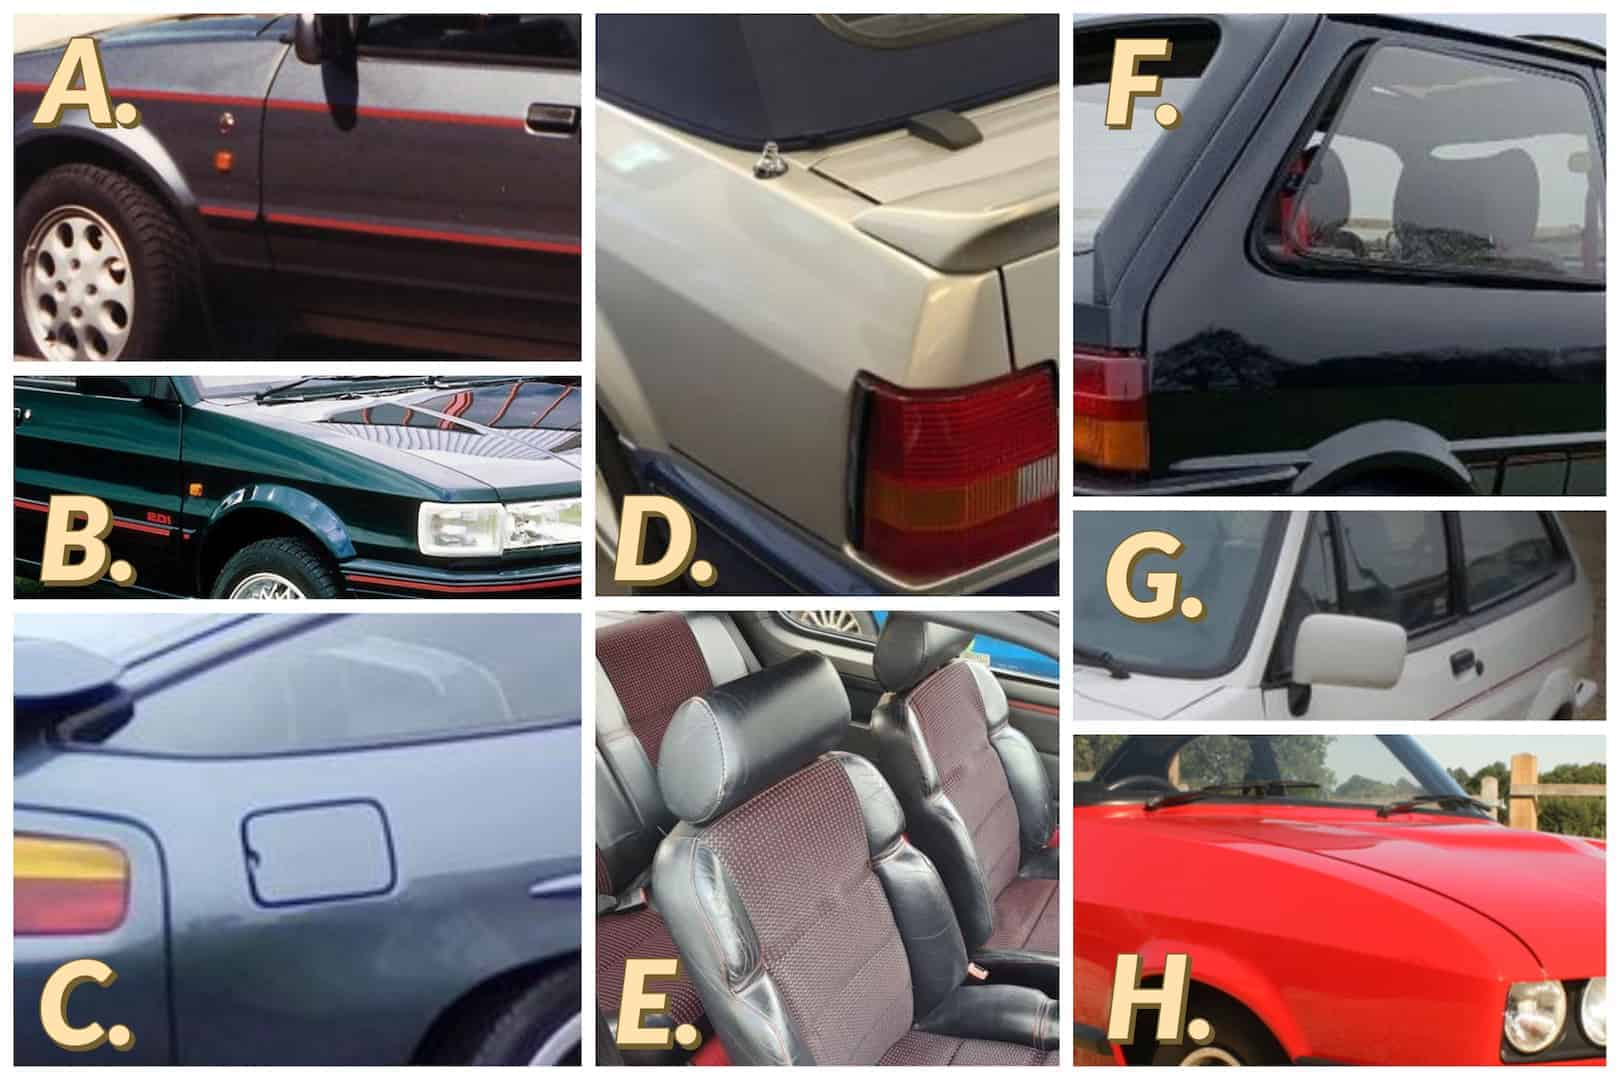 NUMBERED 80's classic cars